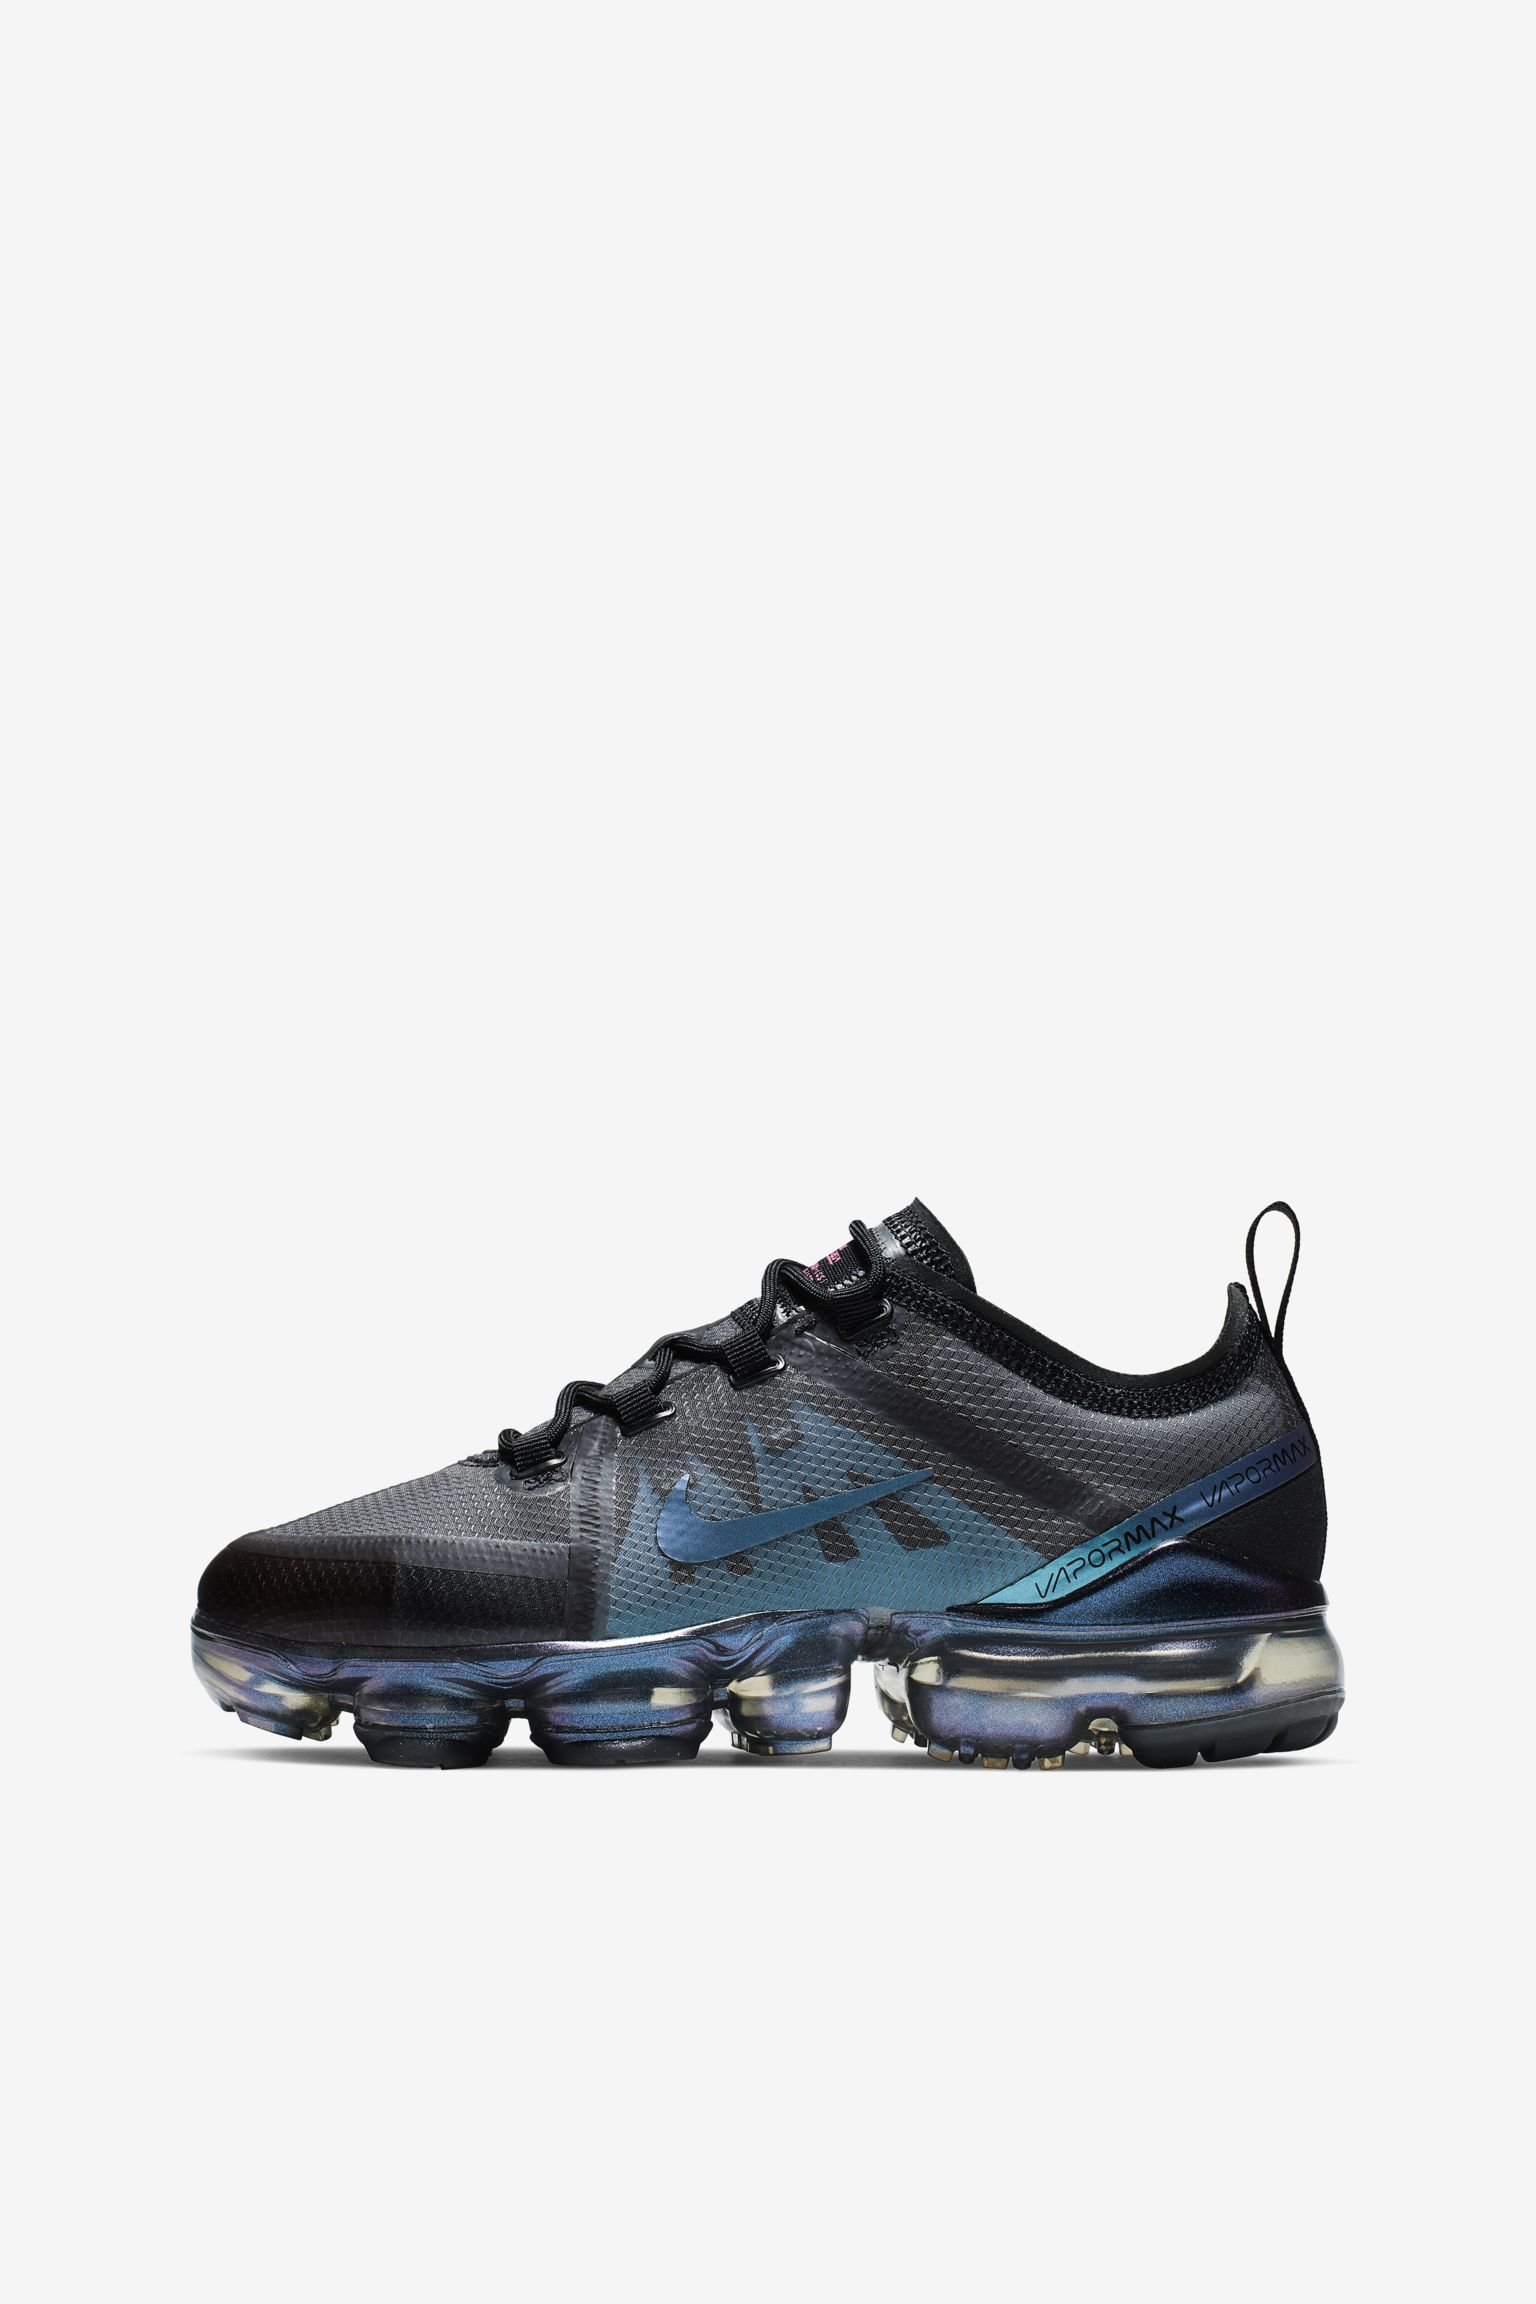 Nike Air VaporMax 2019 'Throwback Future' Release Date